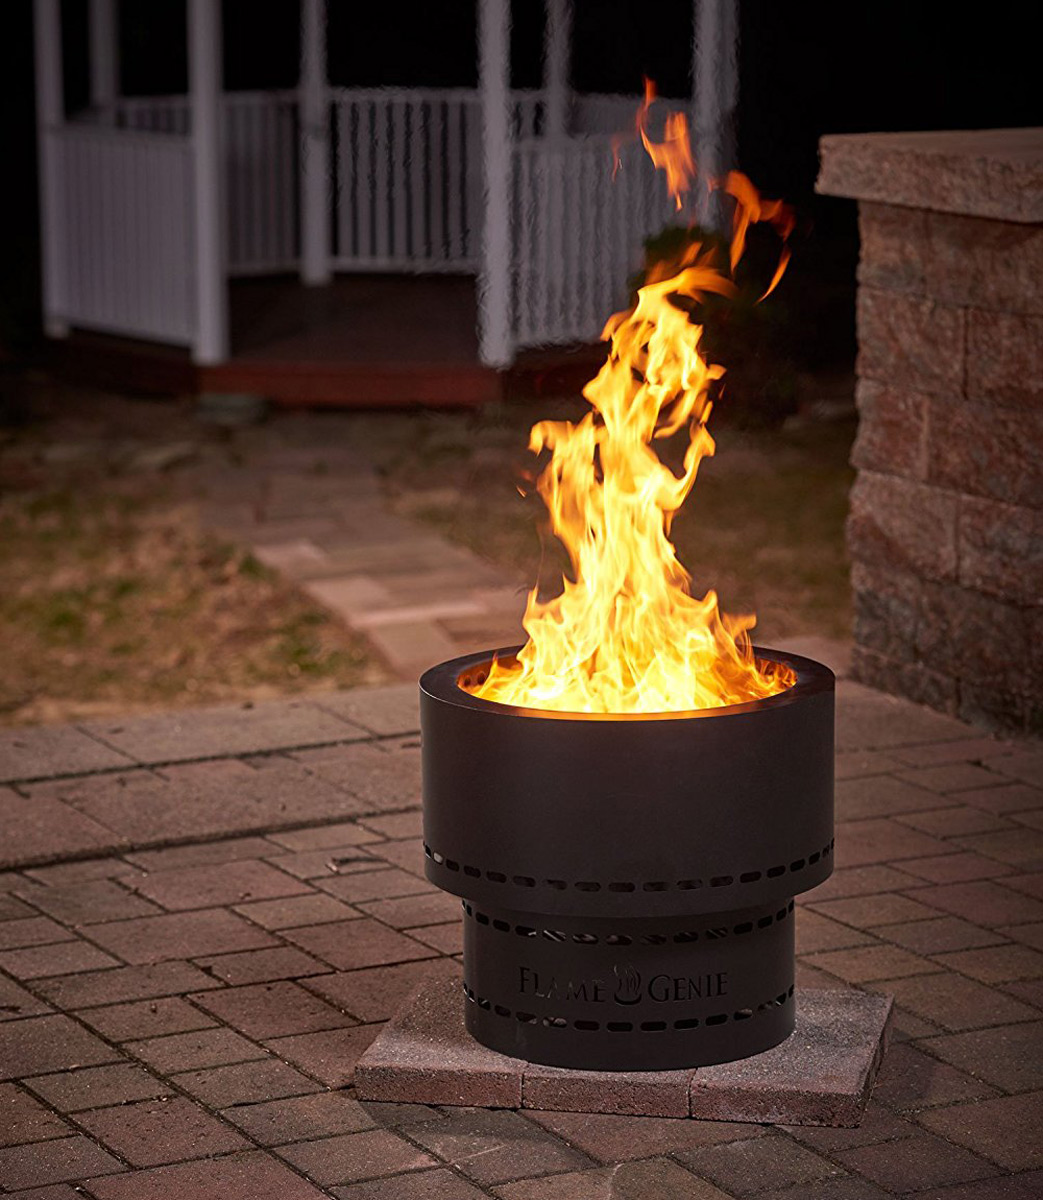 Flame genie wood pellet smokeless fire pit the green head